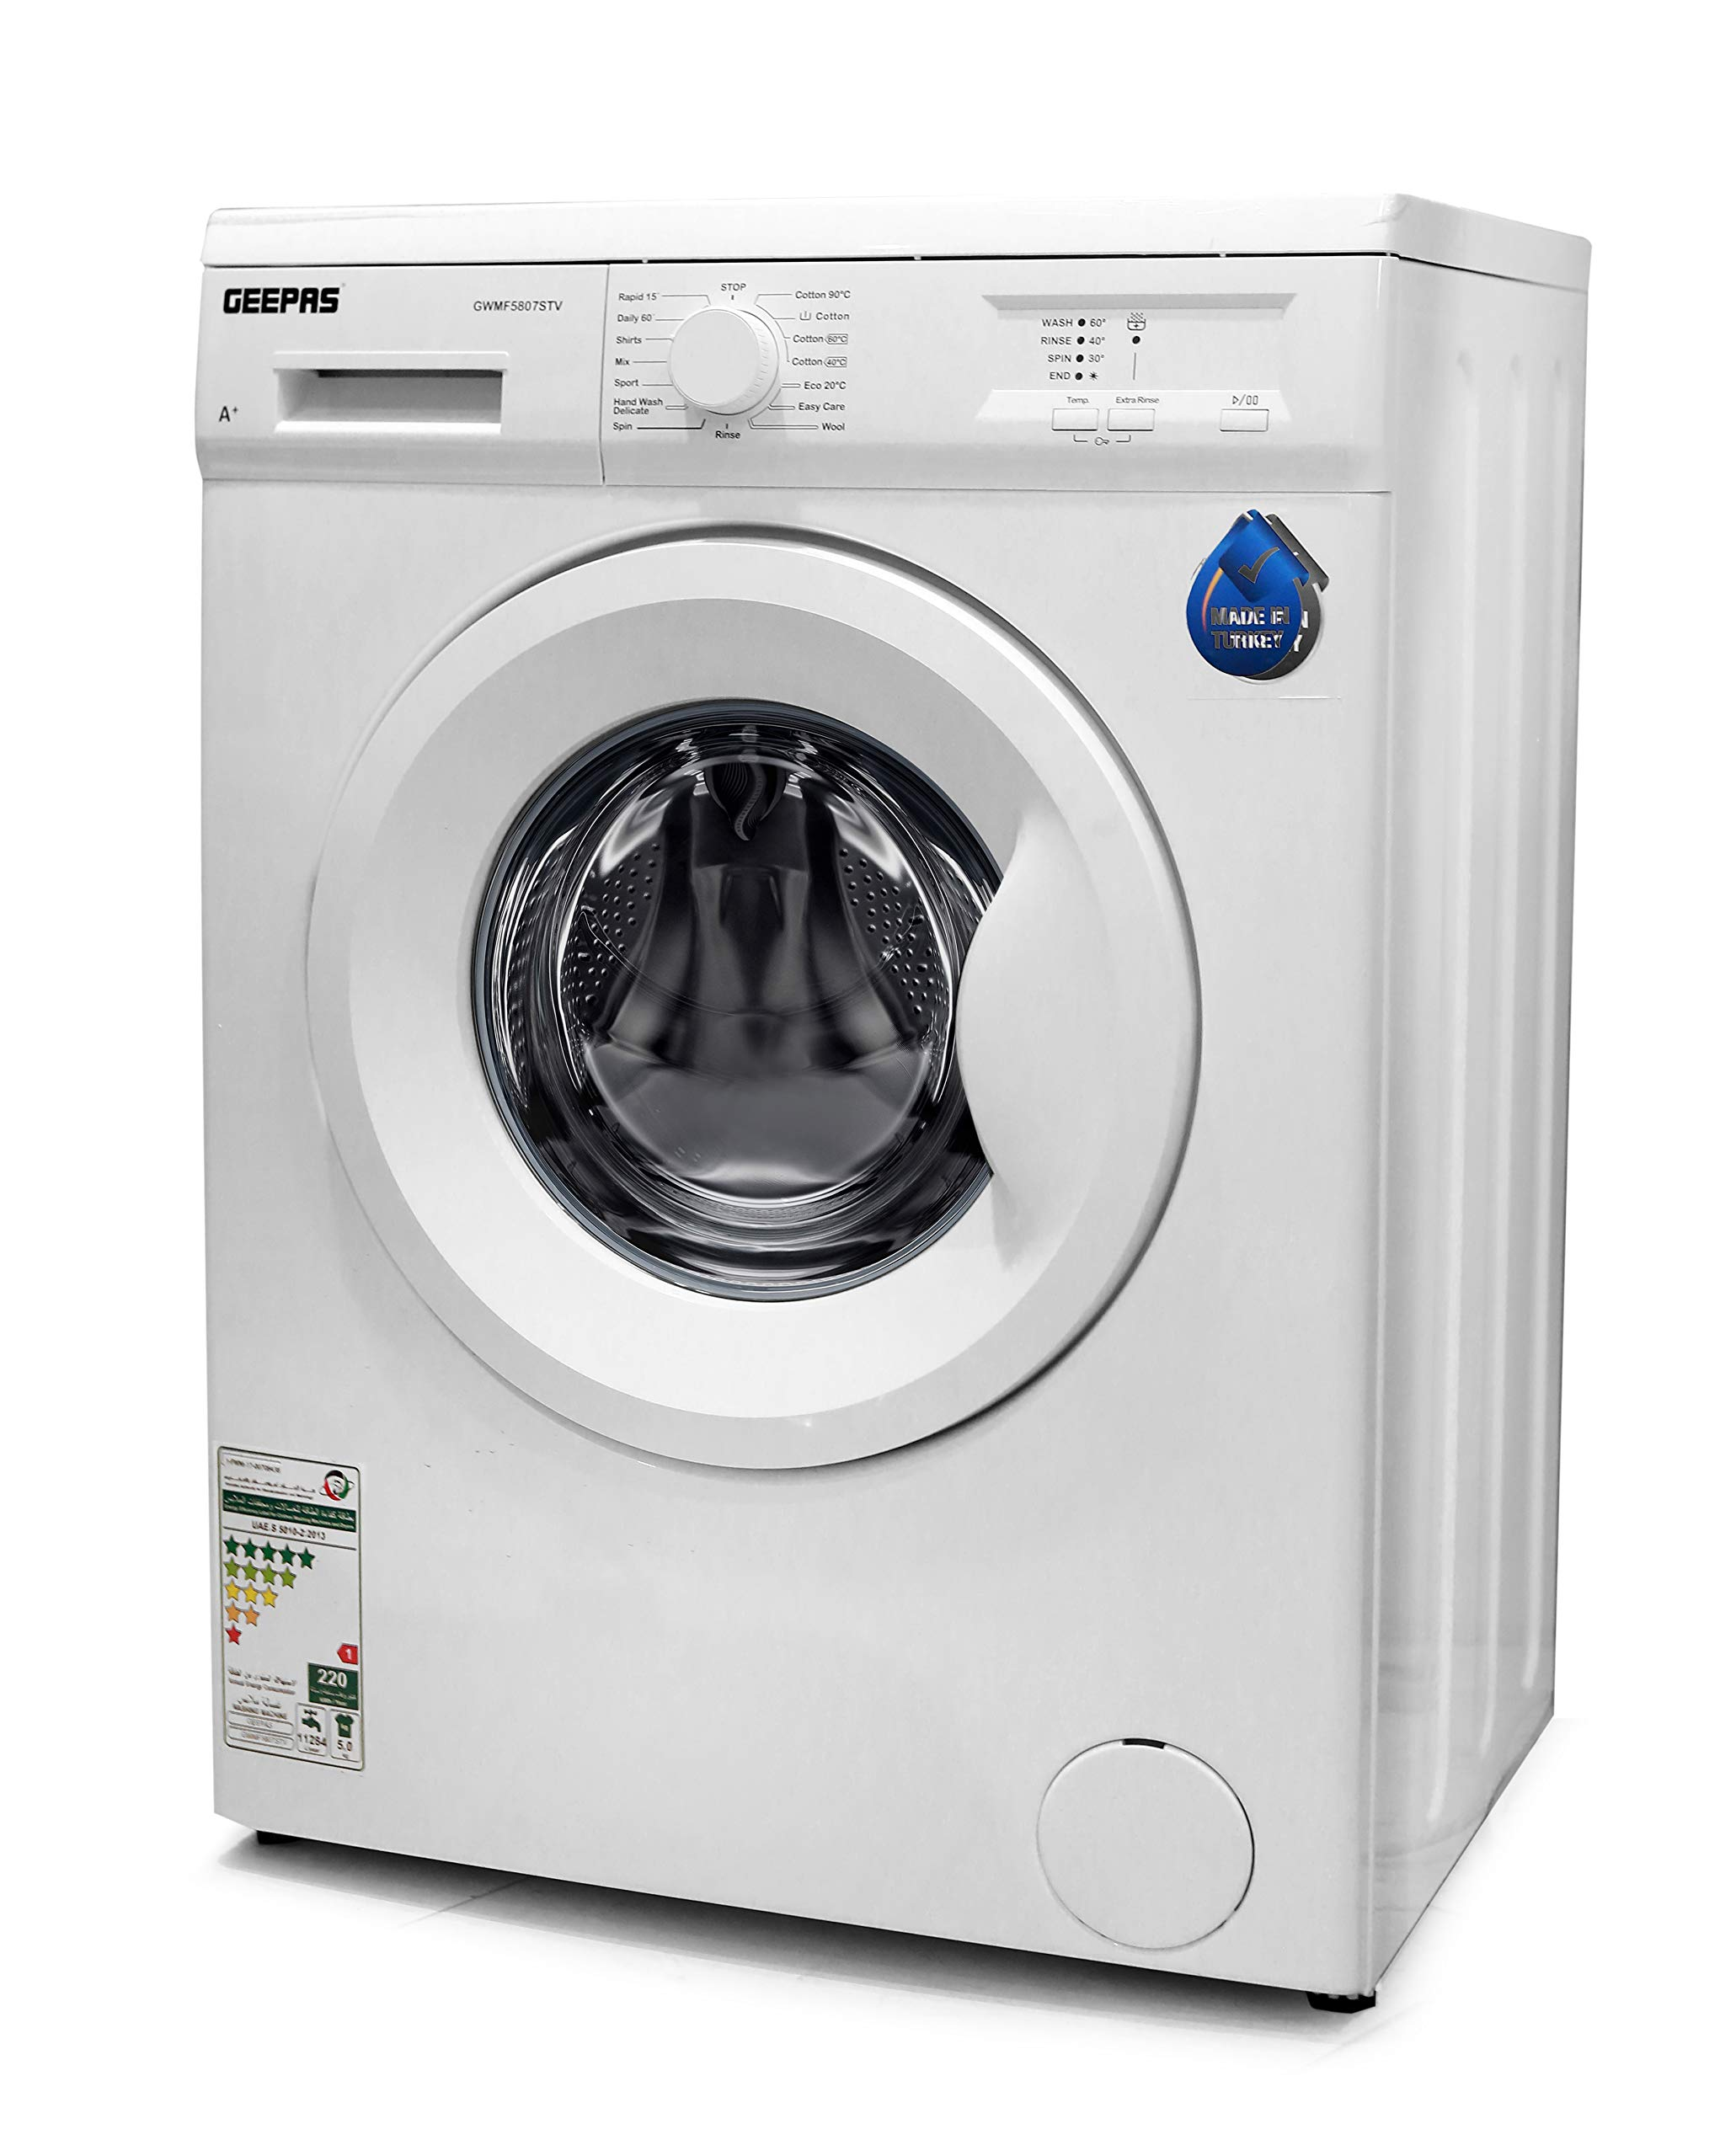 Geepas GWMF5807STV Fully Automatic Front Load Washing ...